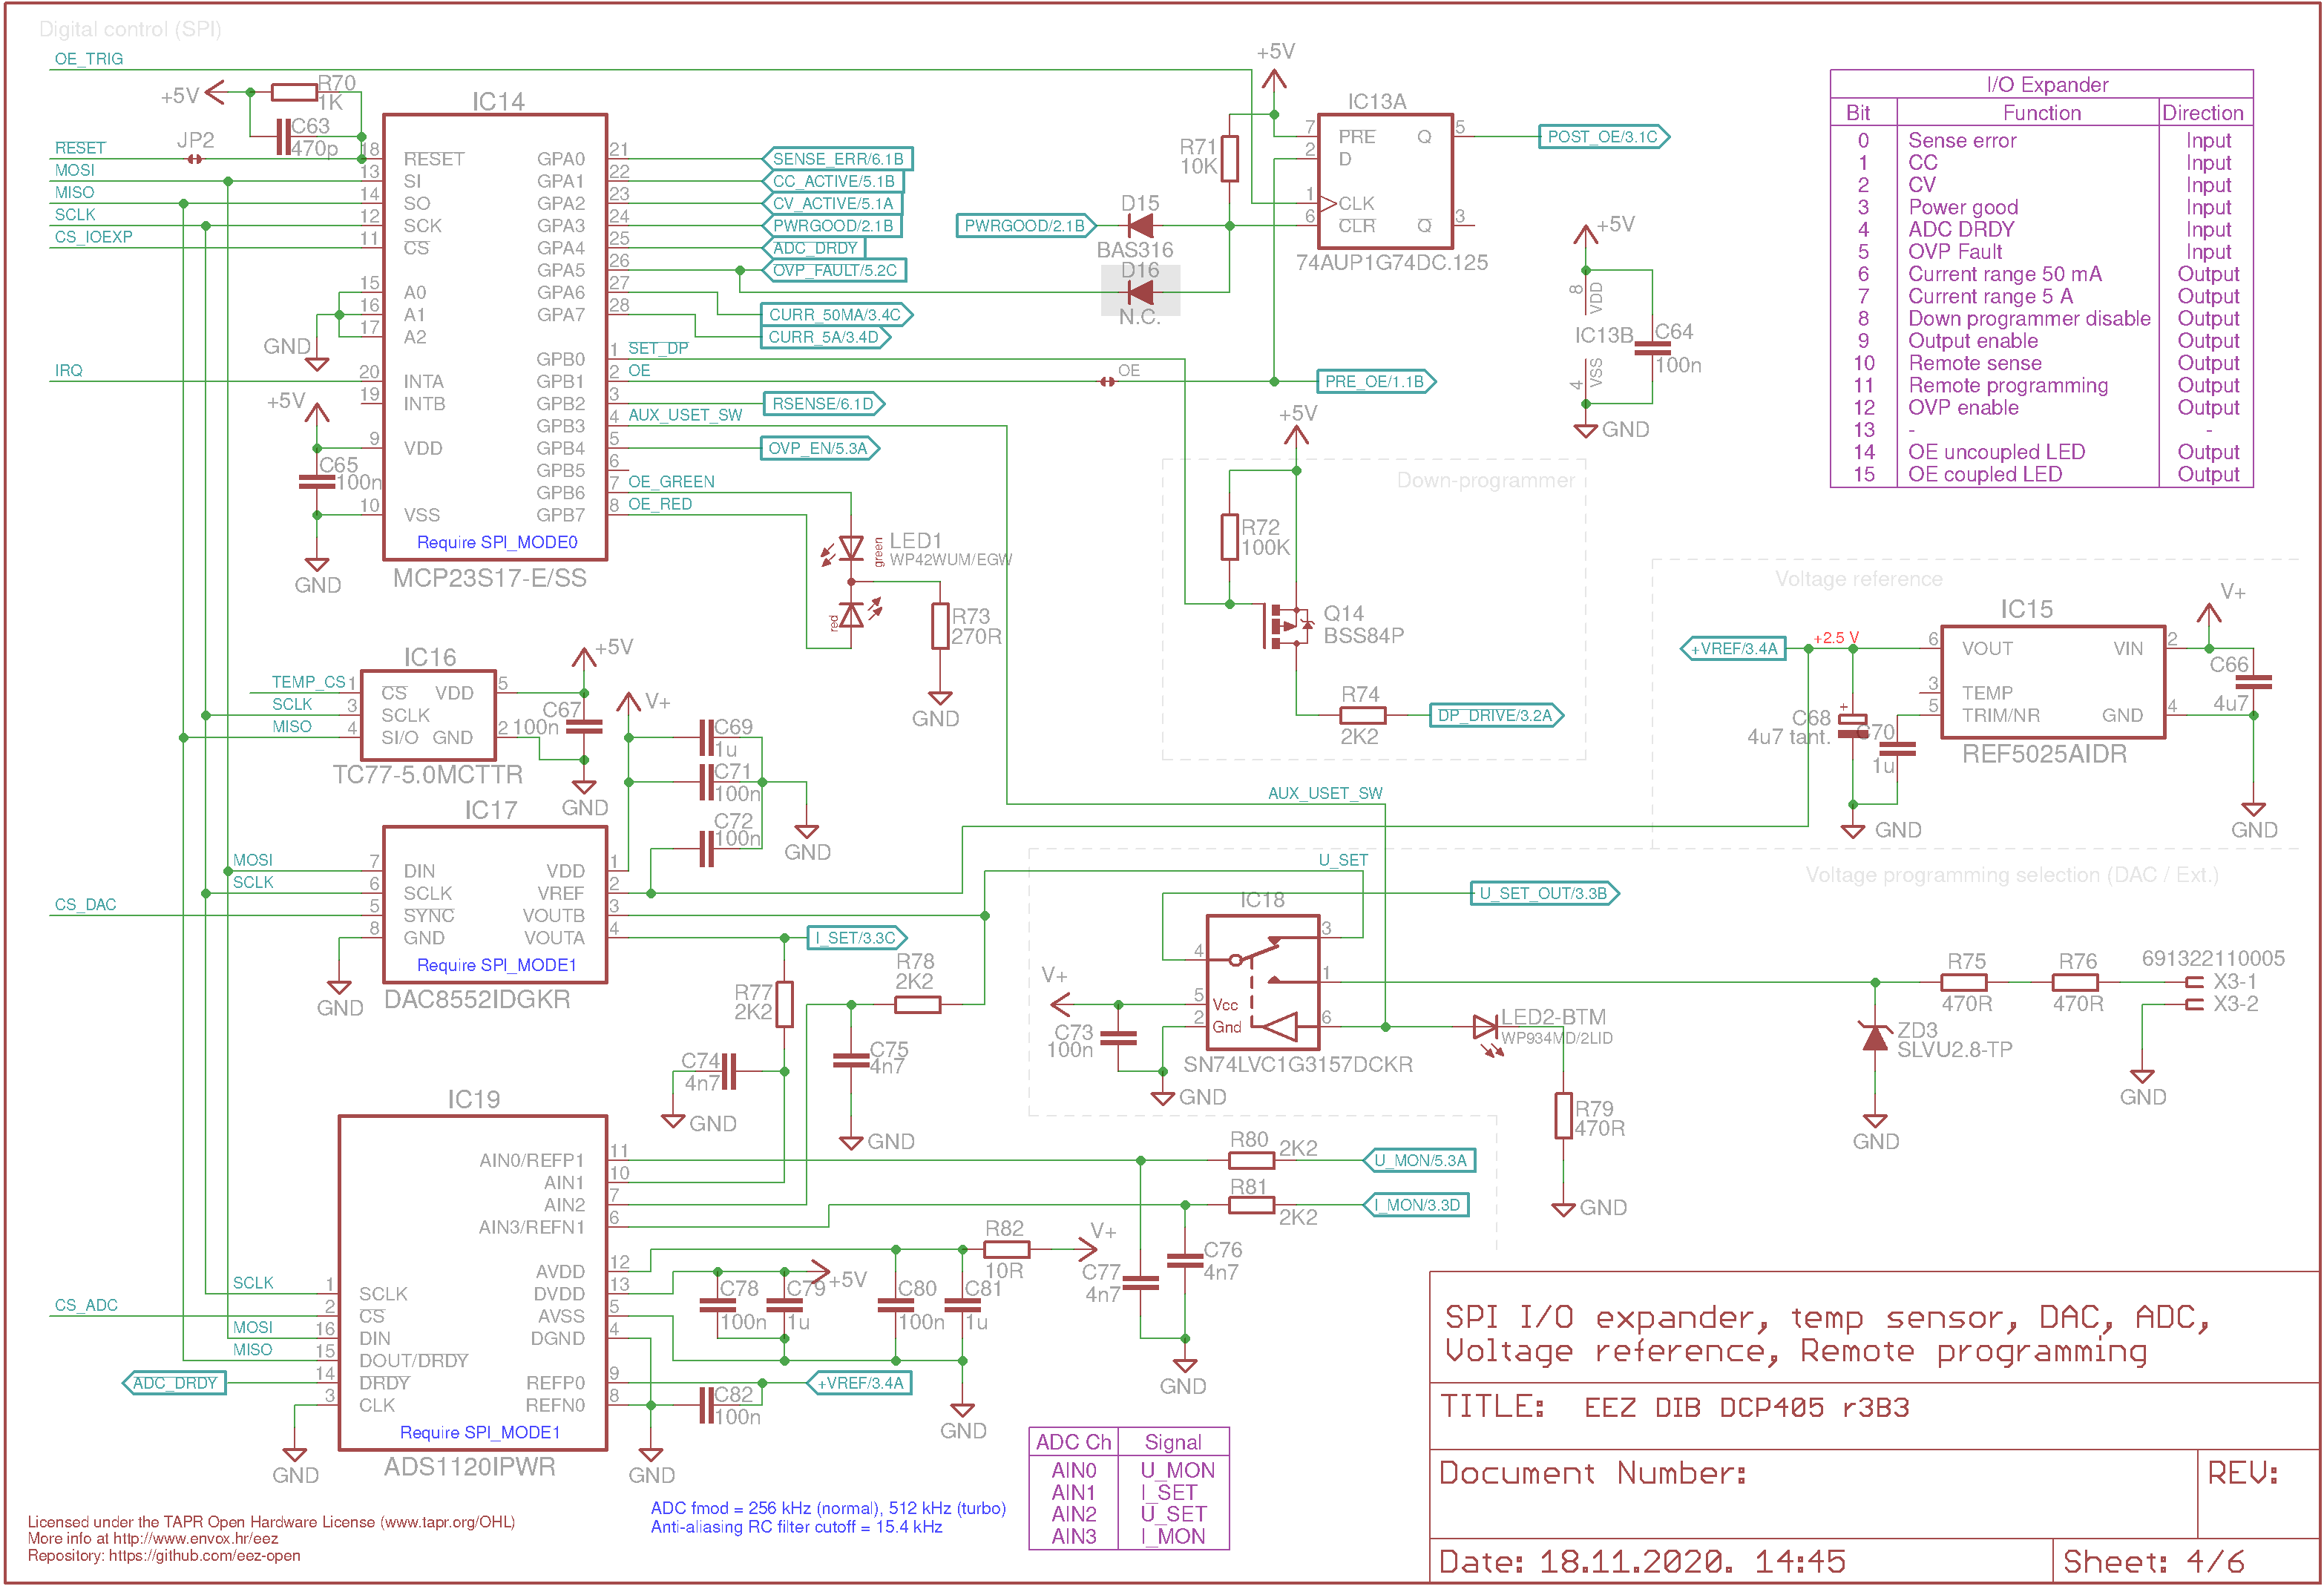 dcp405 r3b3 4of6.png